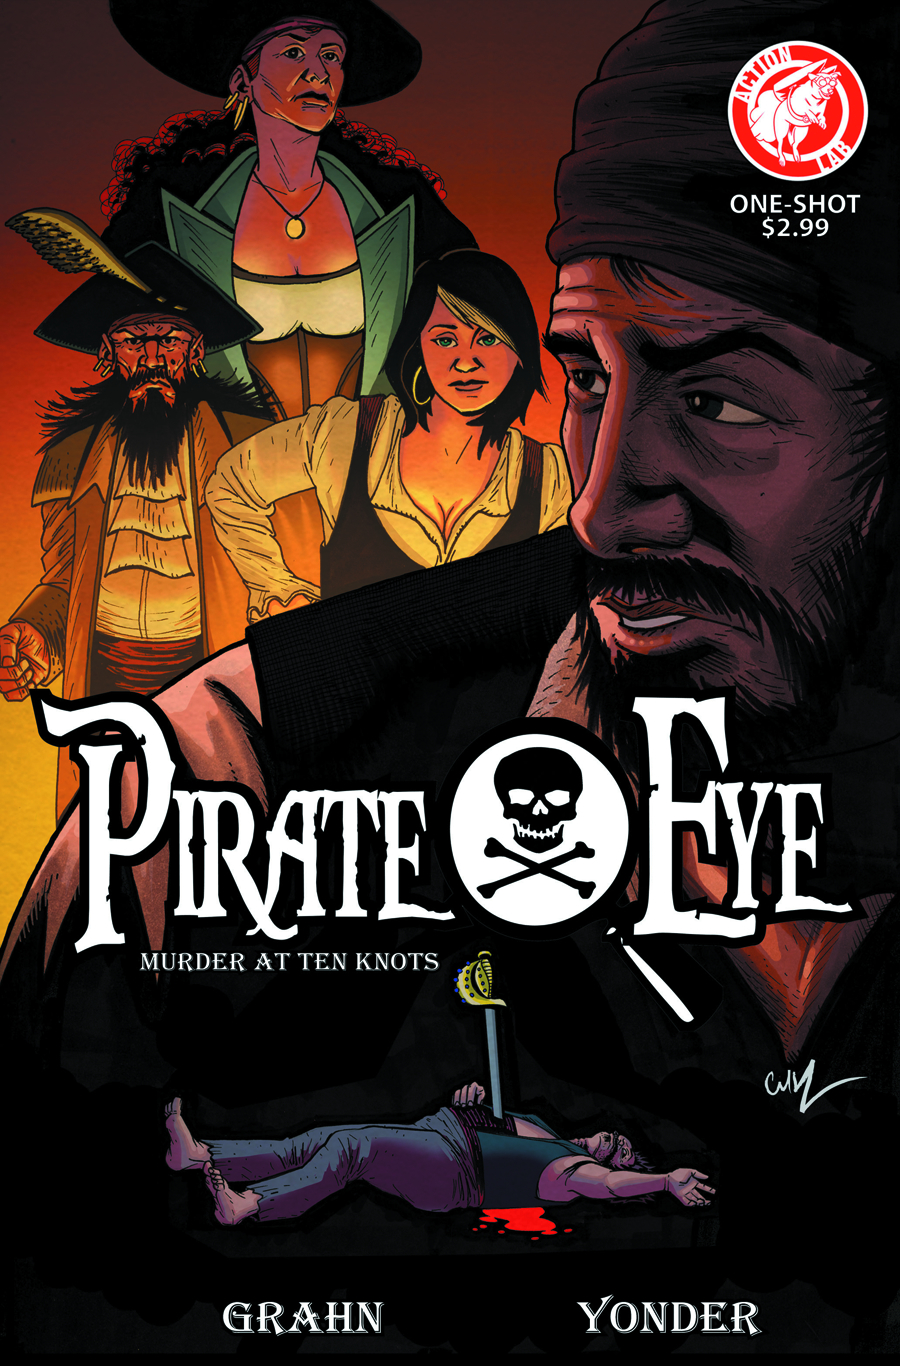 PIRATE EYE MURDER AT TEN KNOTS ONE SHOT